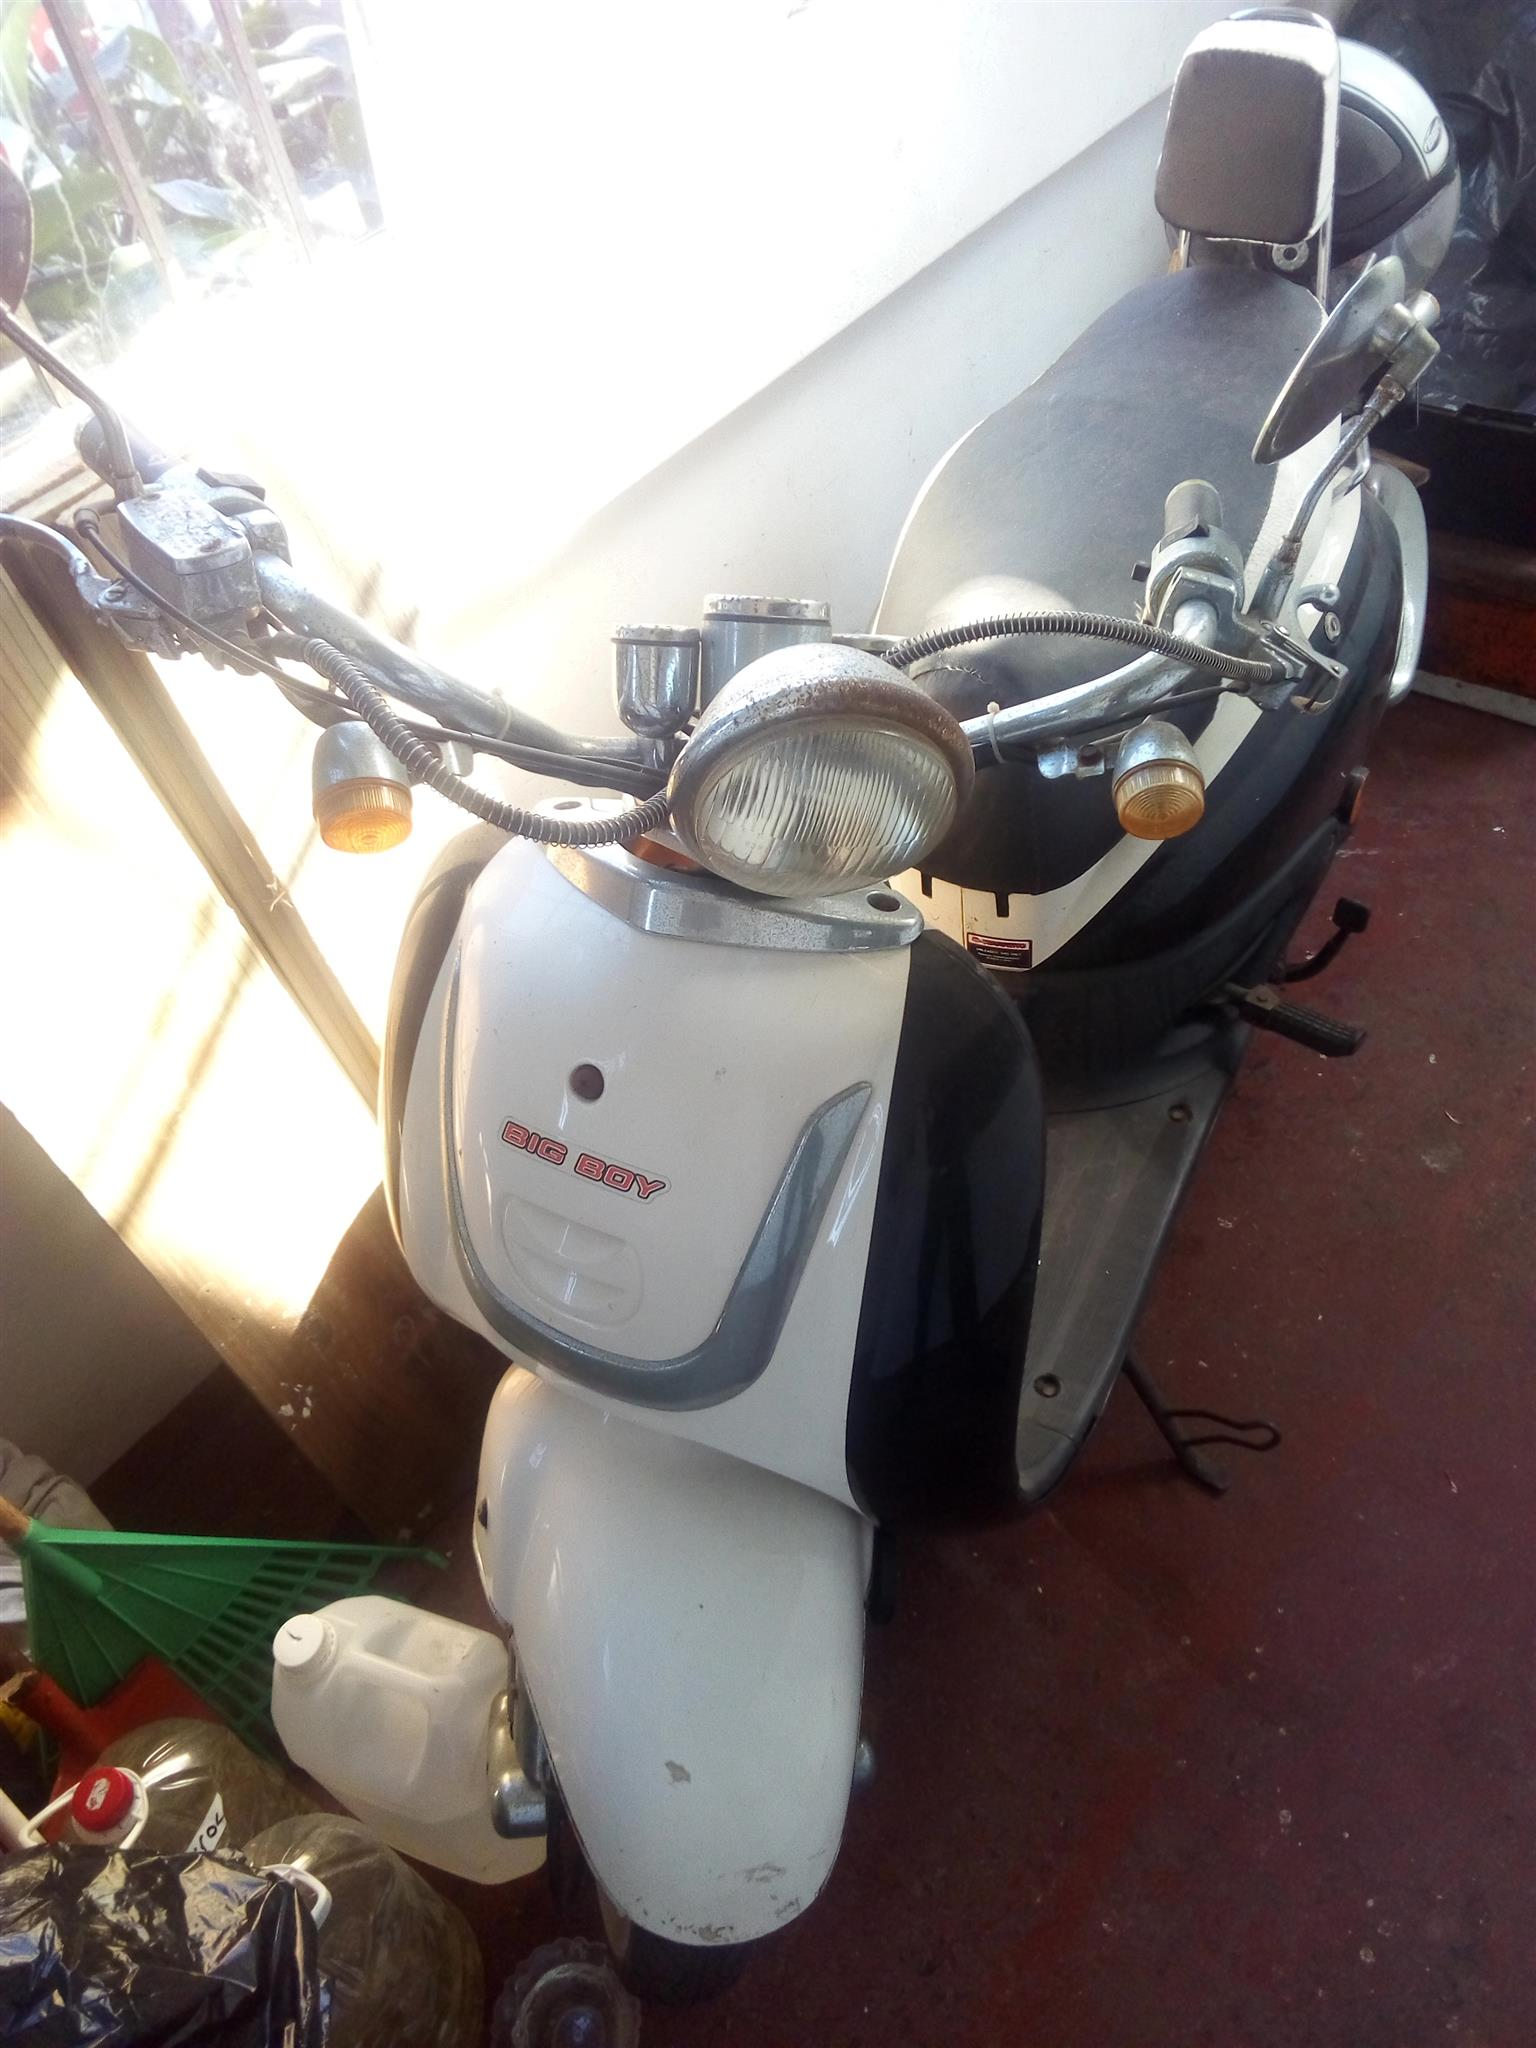 Second hand big boy scooter for sale